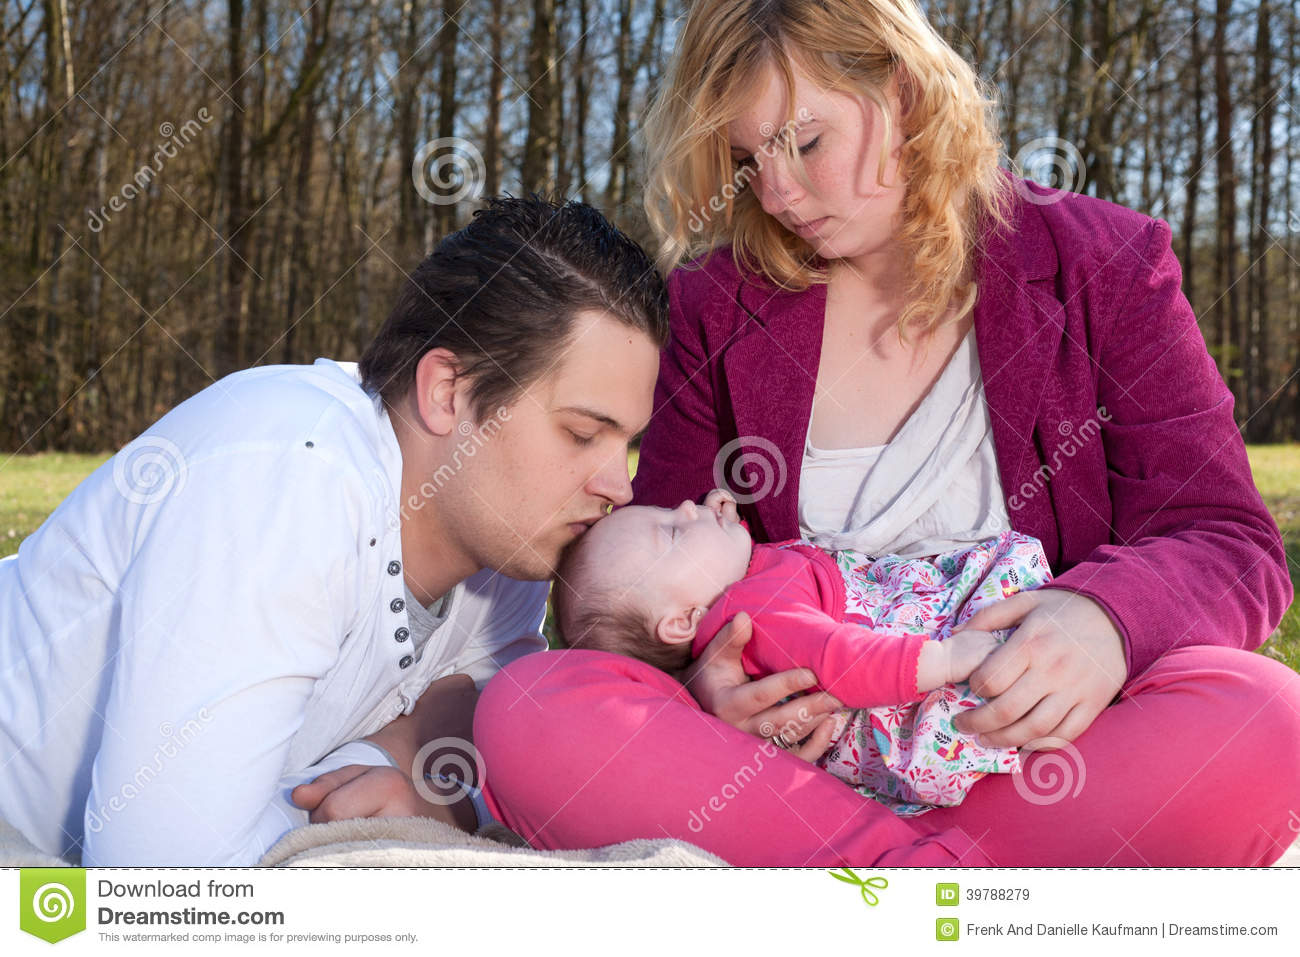 8d9dbba27 Daddy Is Kissing His Baby Girl Stock Image - Image of healthy, baby ...